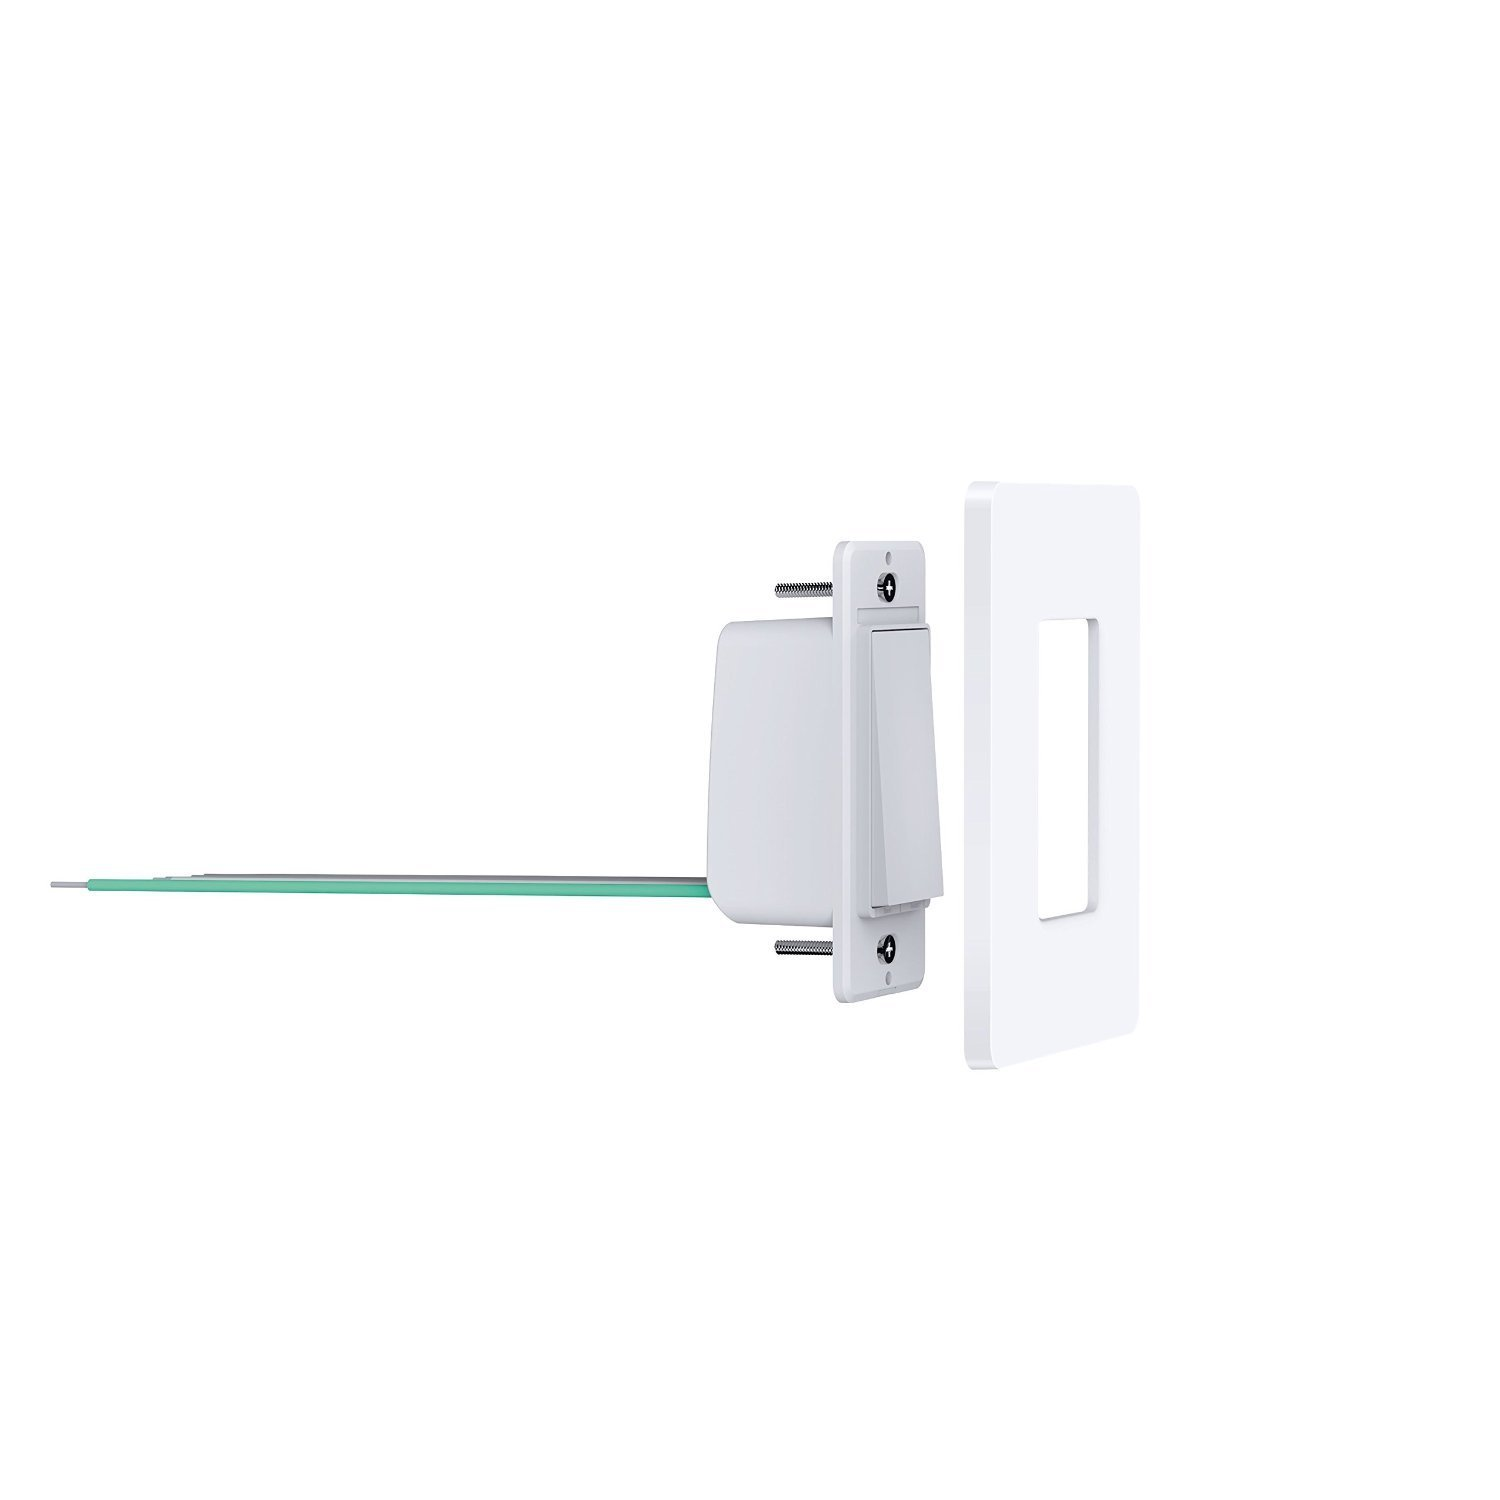 TP-Link Smart Wi-Fi Light Switch, No Hub Required, Single Pole, Control Your Fixtures From Anywhere (HS200), Works with Amazon Alexa Kit (2-Pack) by TP-Link (Image #3)